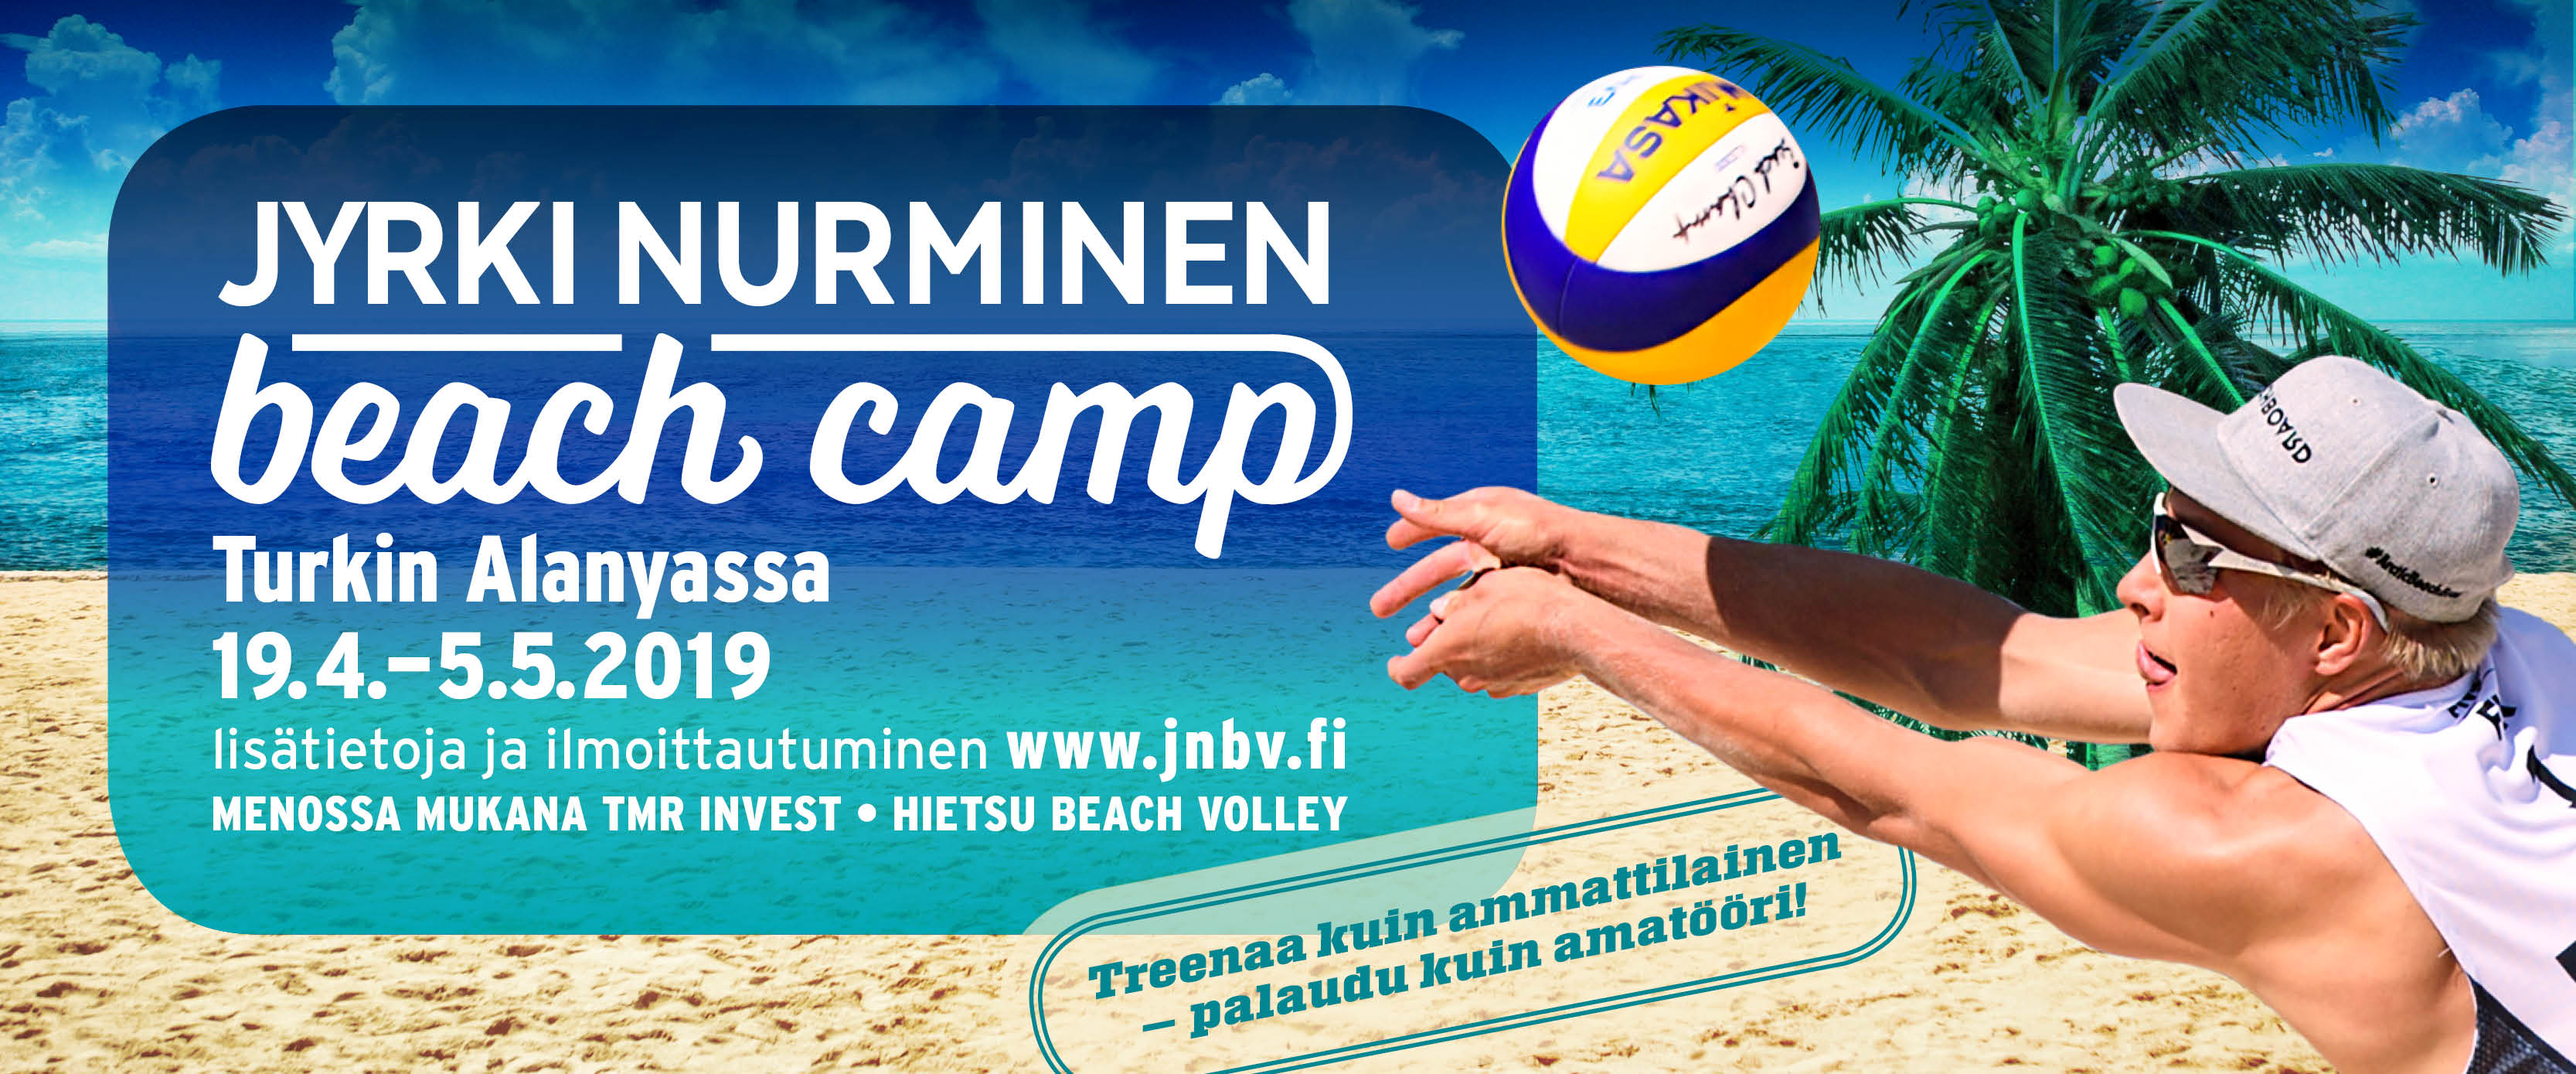 Jyrki Nurminen Beach Camp